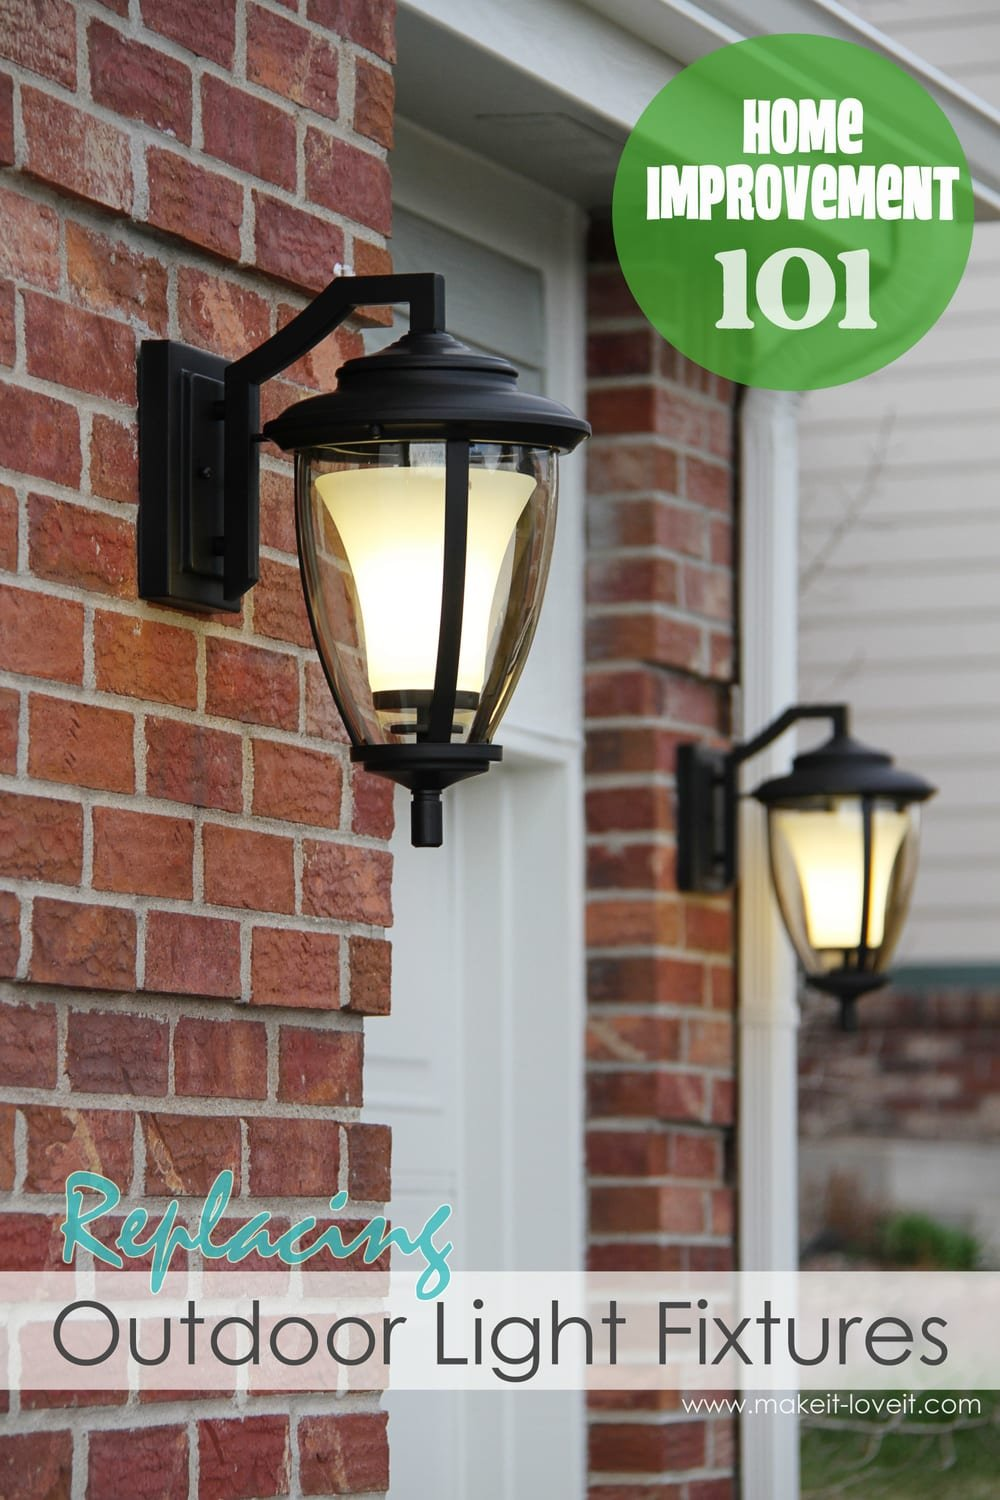 Enjoyable Home Improvement Replacing Outdoor Light Fixtures Dont Be Scared Wiring 101 Archstreekradiomeanderfmnl